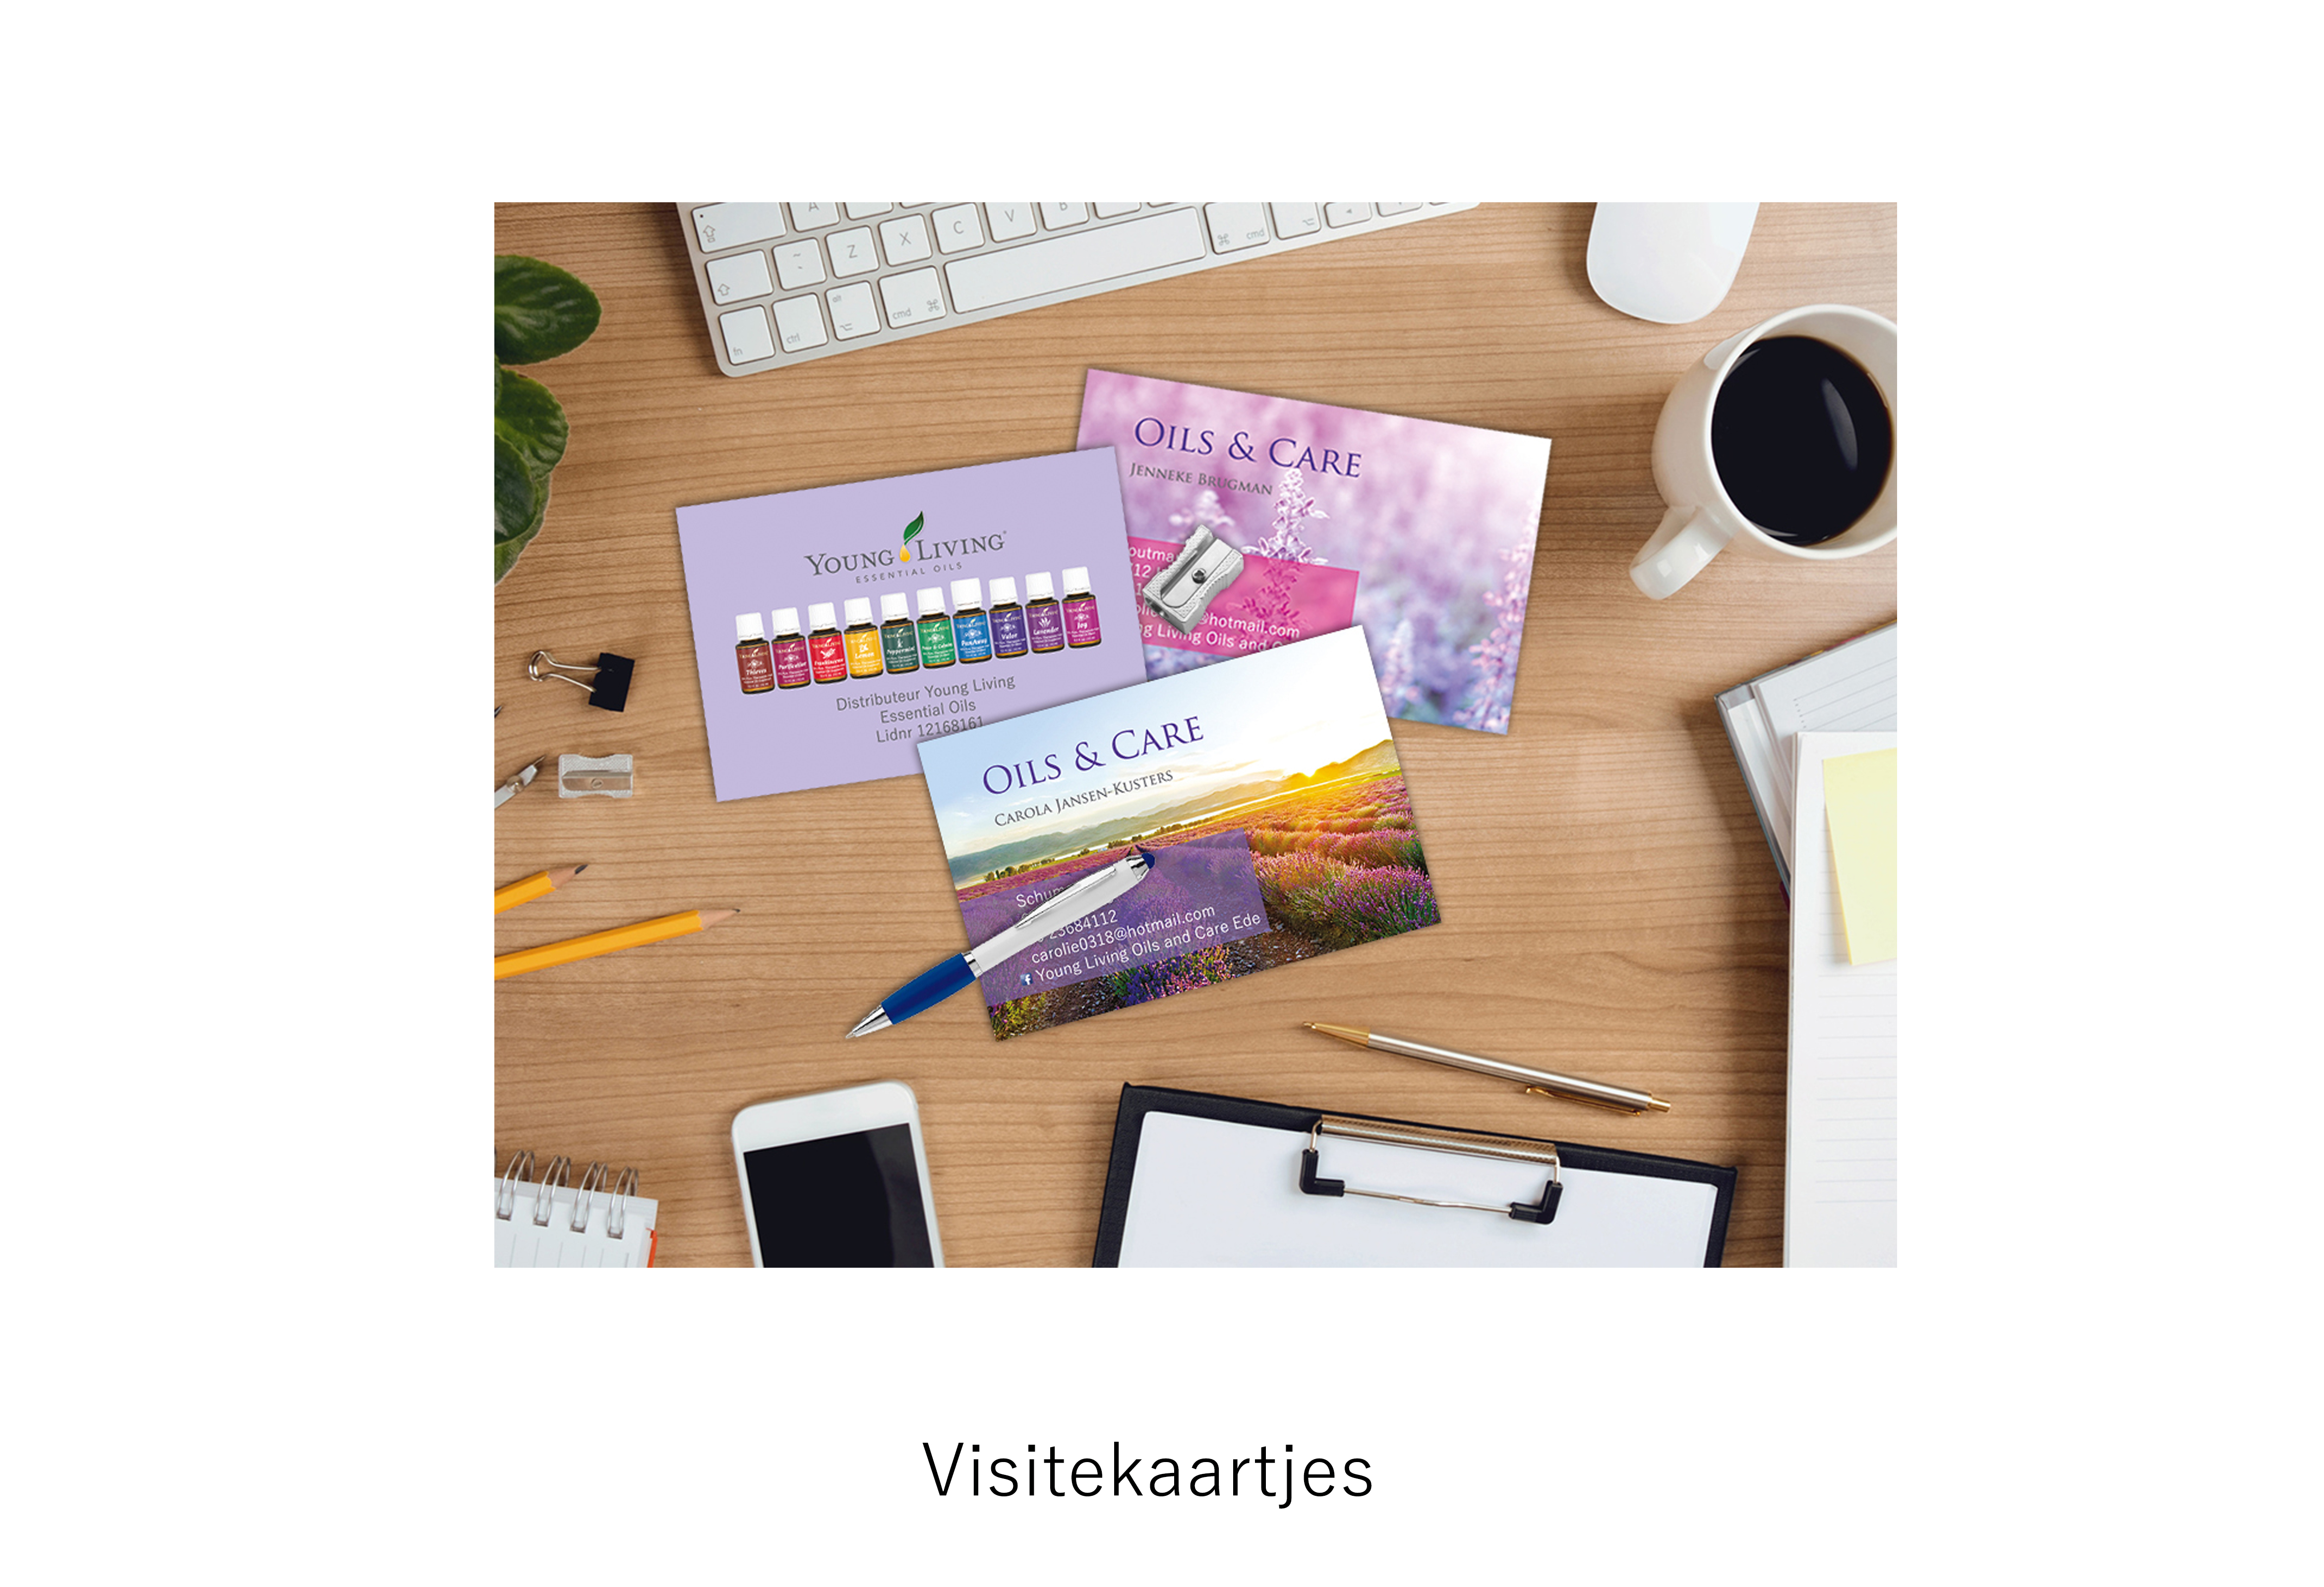 promotiemateriaal Oils and care